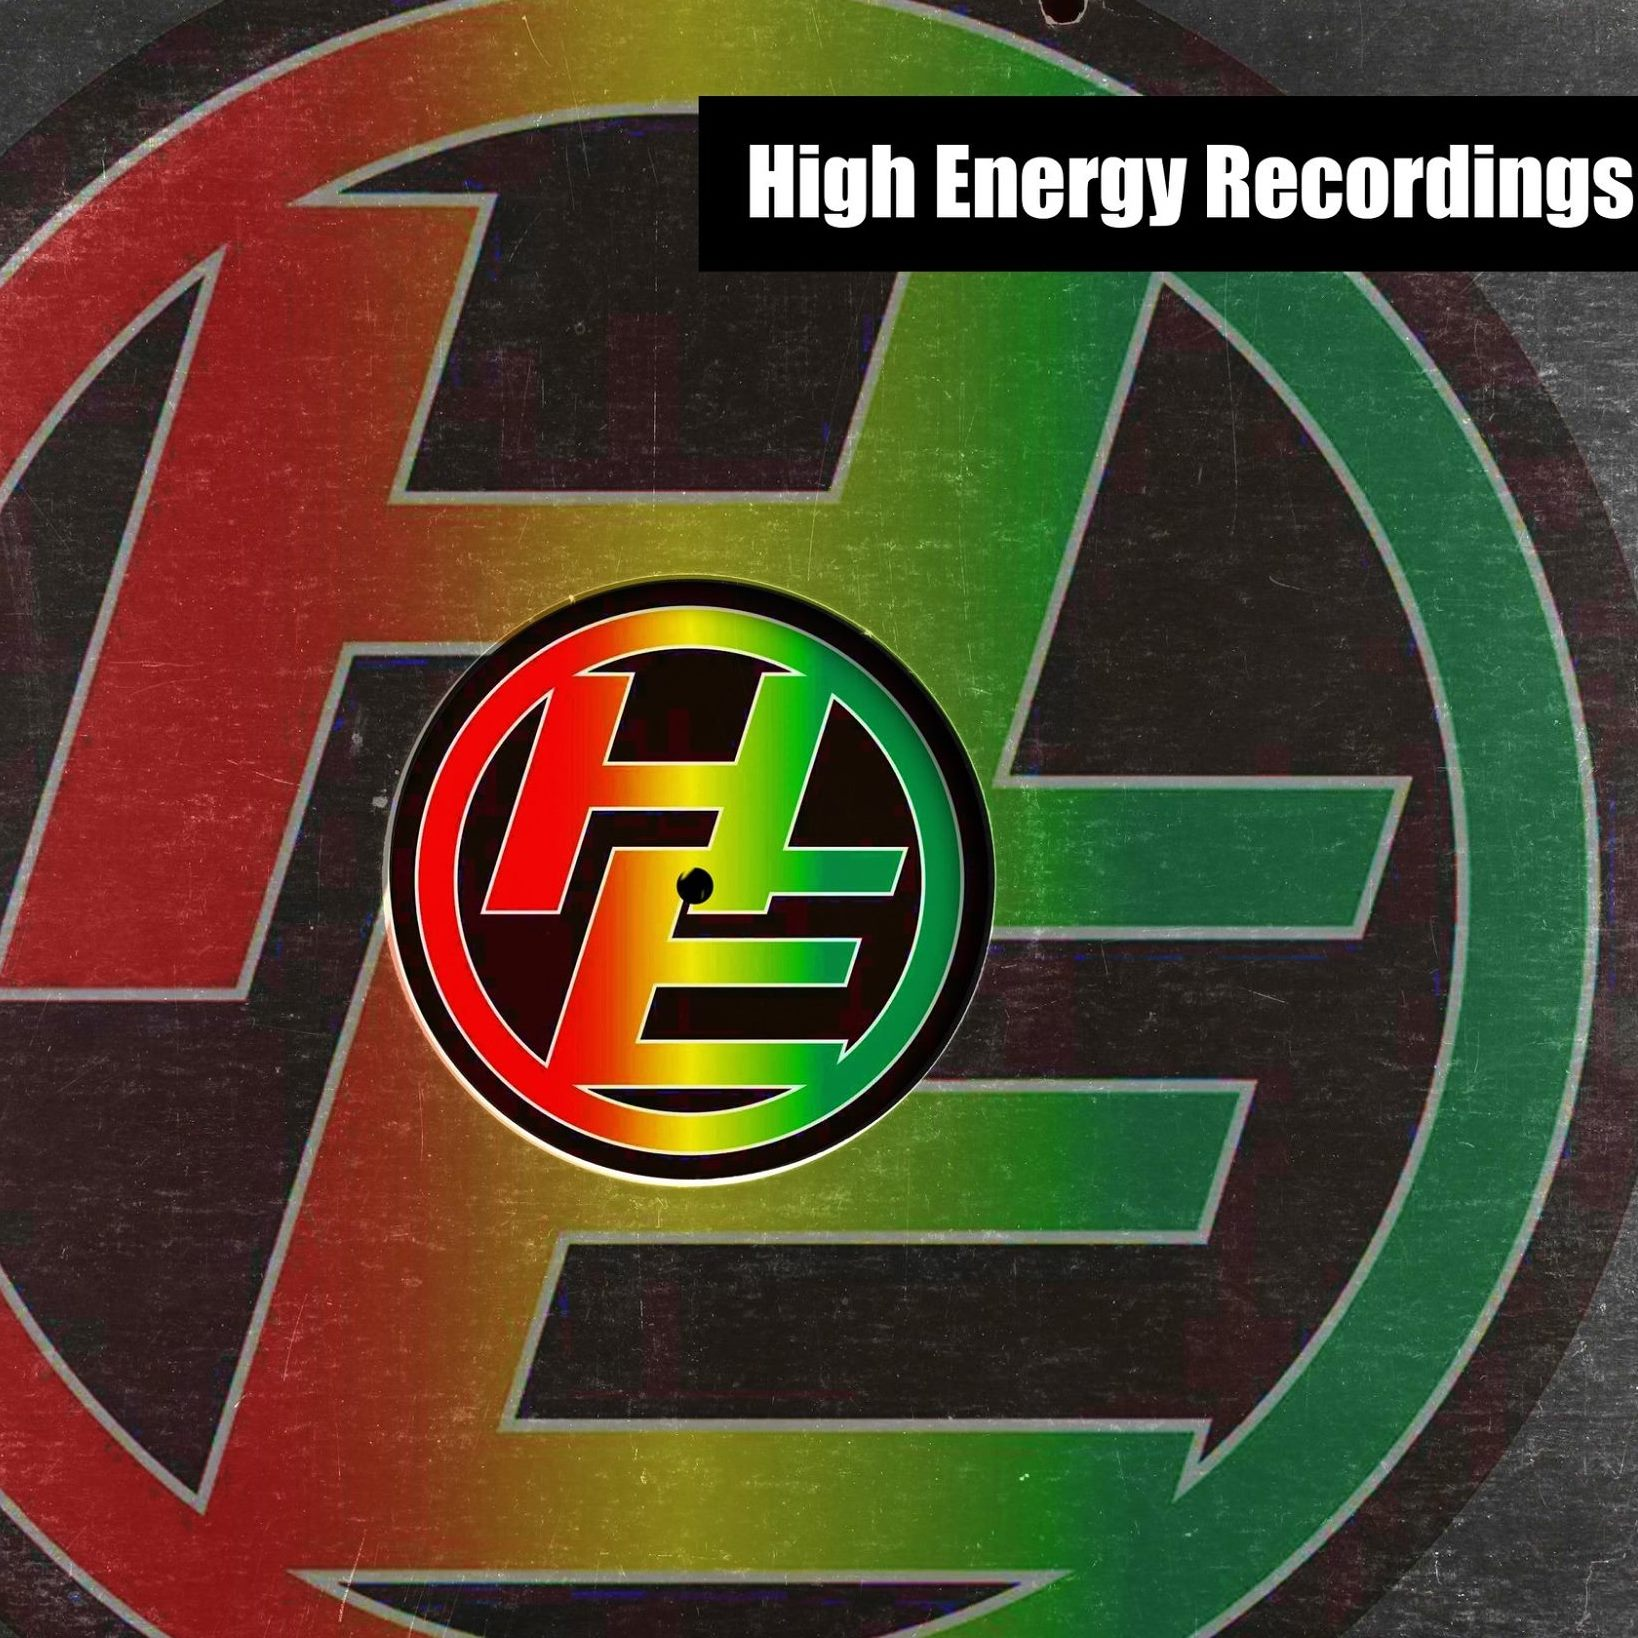 High Energy Recordings